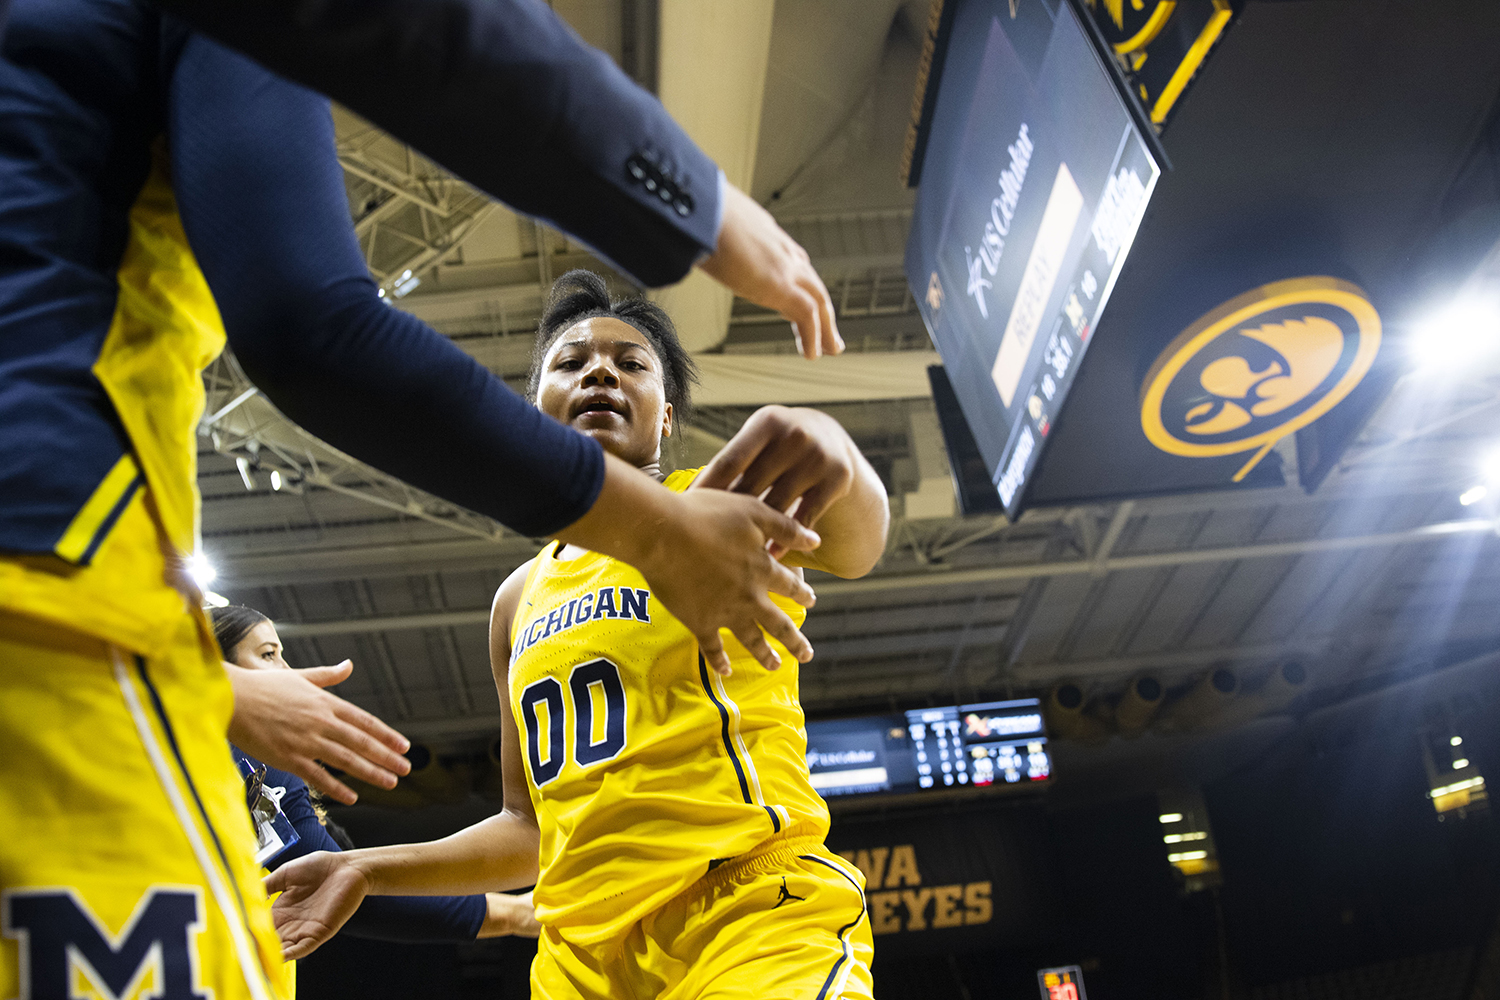 Michigan+forward+Naz+Hillmon+high+fives+team+staff+members+during+the+Iowa%2FMichigan+women%27s+basketball+game+at+Carver-Hawkeye+Arena+on+Thursday%2C+January+17%2C+2019.+The+Hawkeyes+defeated+the+Wolverines%2C+75-61.+